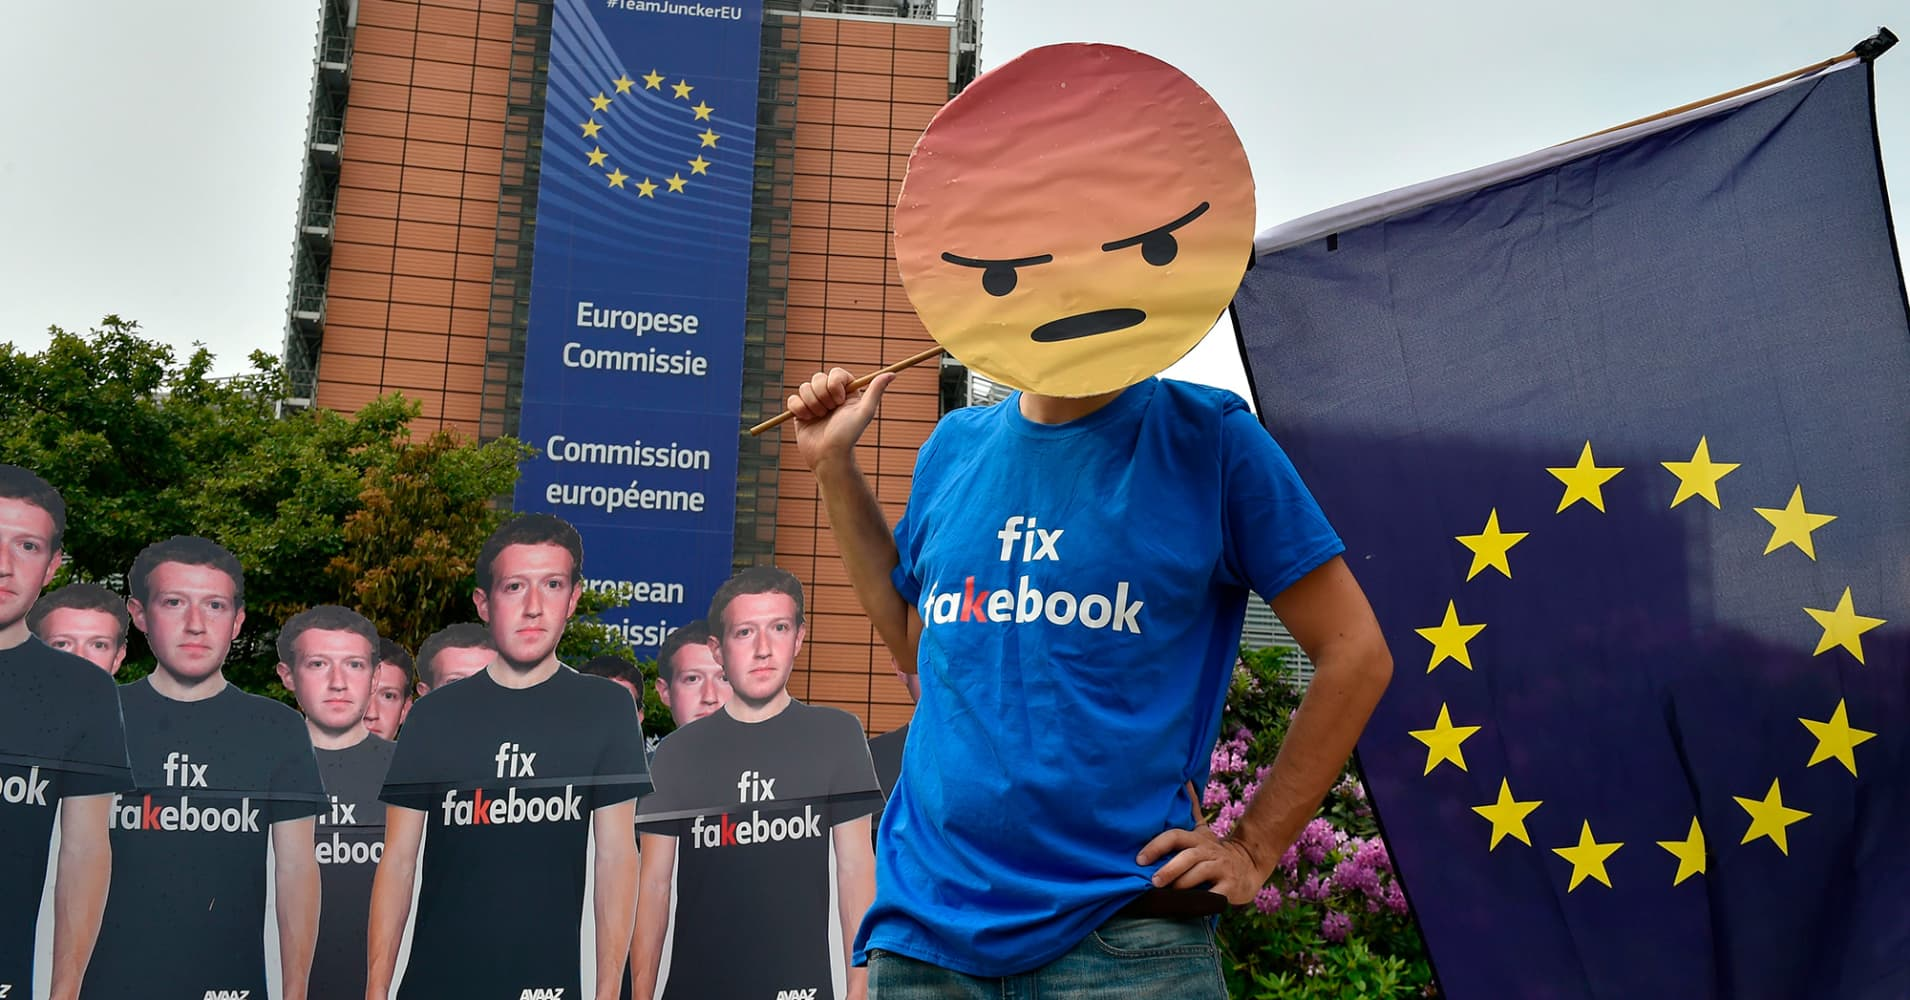 Facebook emails show EU must toughen regulation on social media 'monopoly,' lawmaker says